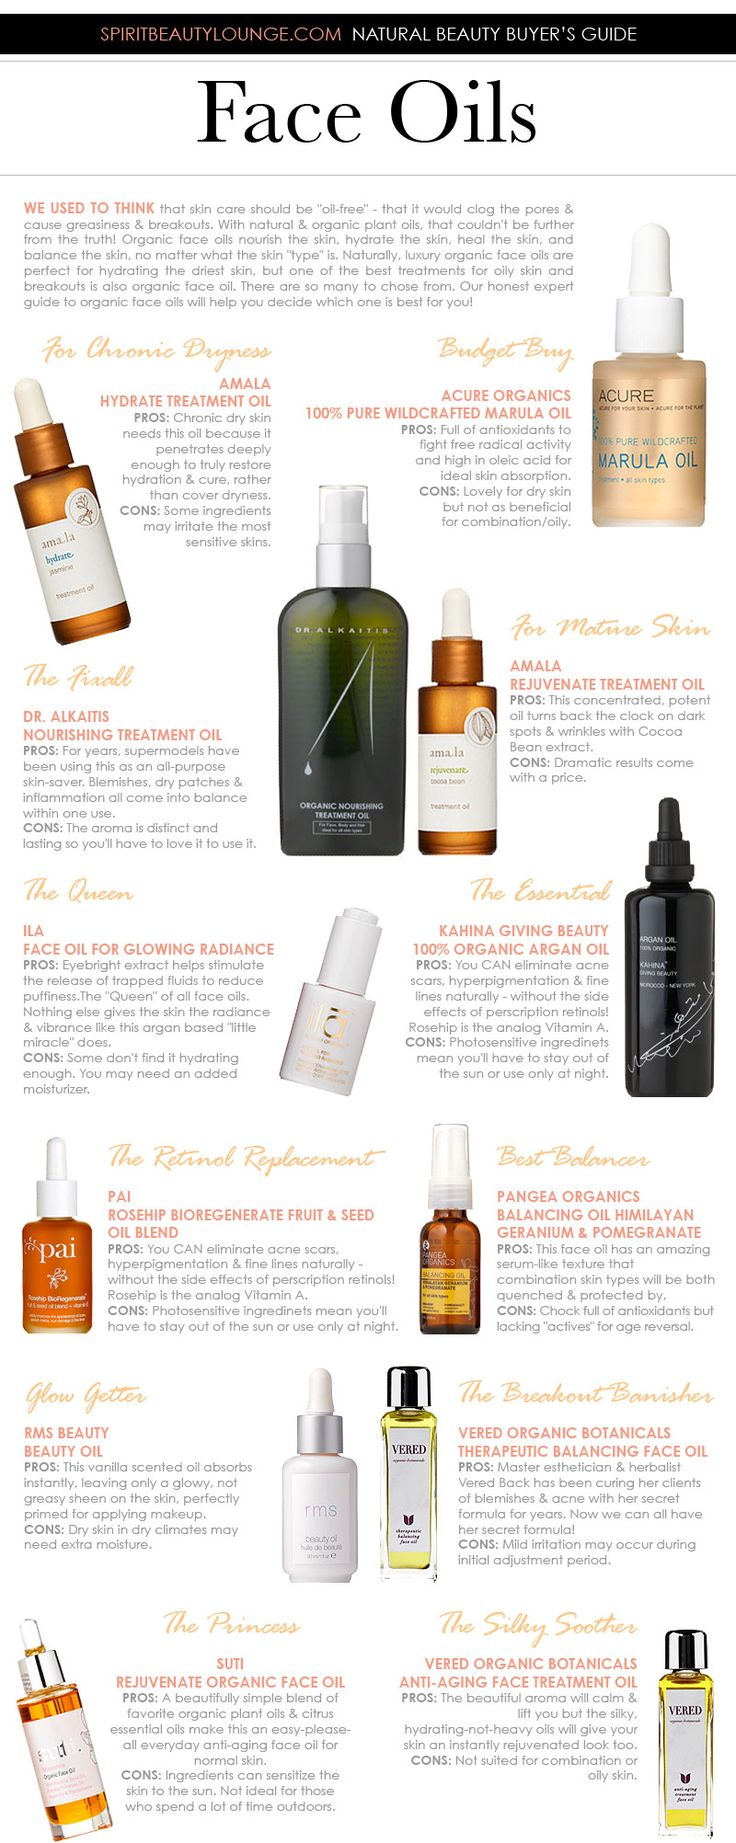 Our Pangea Organics facial oil is named the BEST BALANCER ! Get yours today : www.pangeaorganics.com/parties/ElaineSpringer1118